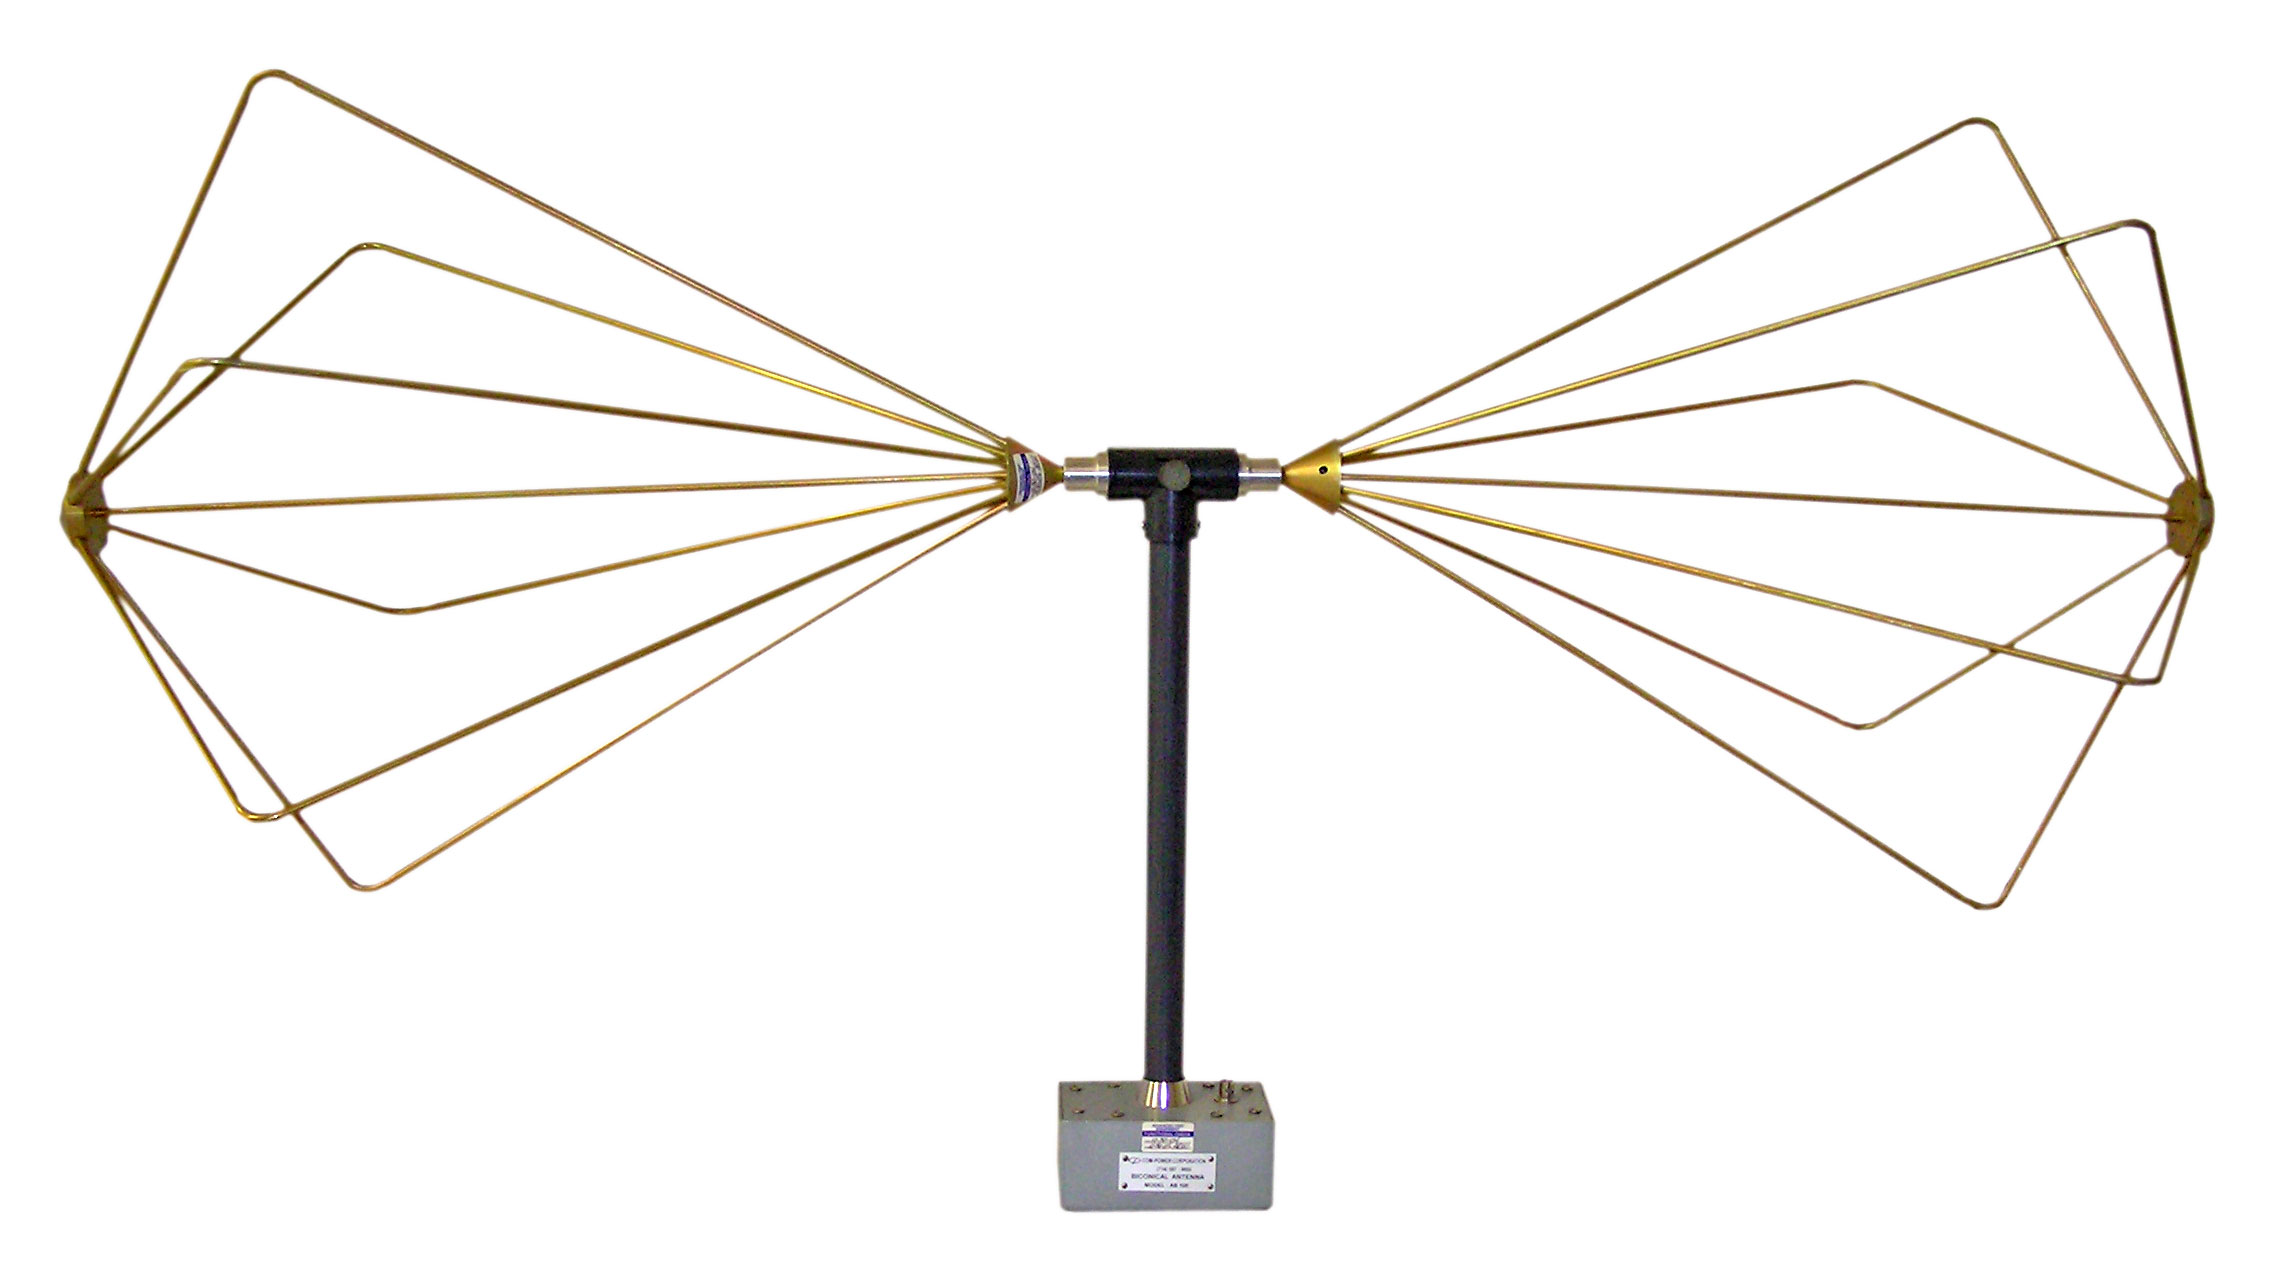 Com-Power AB-100 Wide Band Biconical Antenna, 30 MHz to 300 MHz